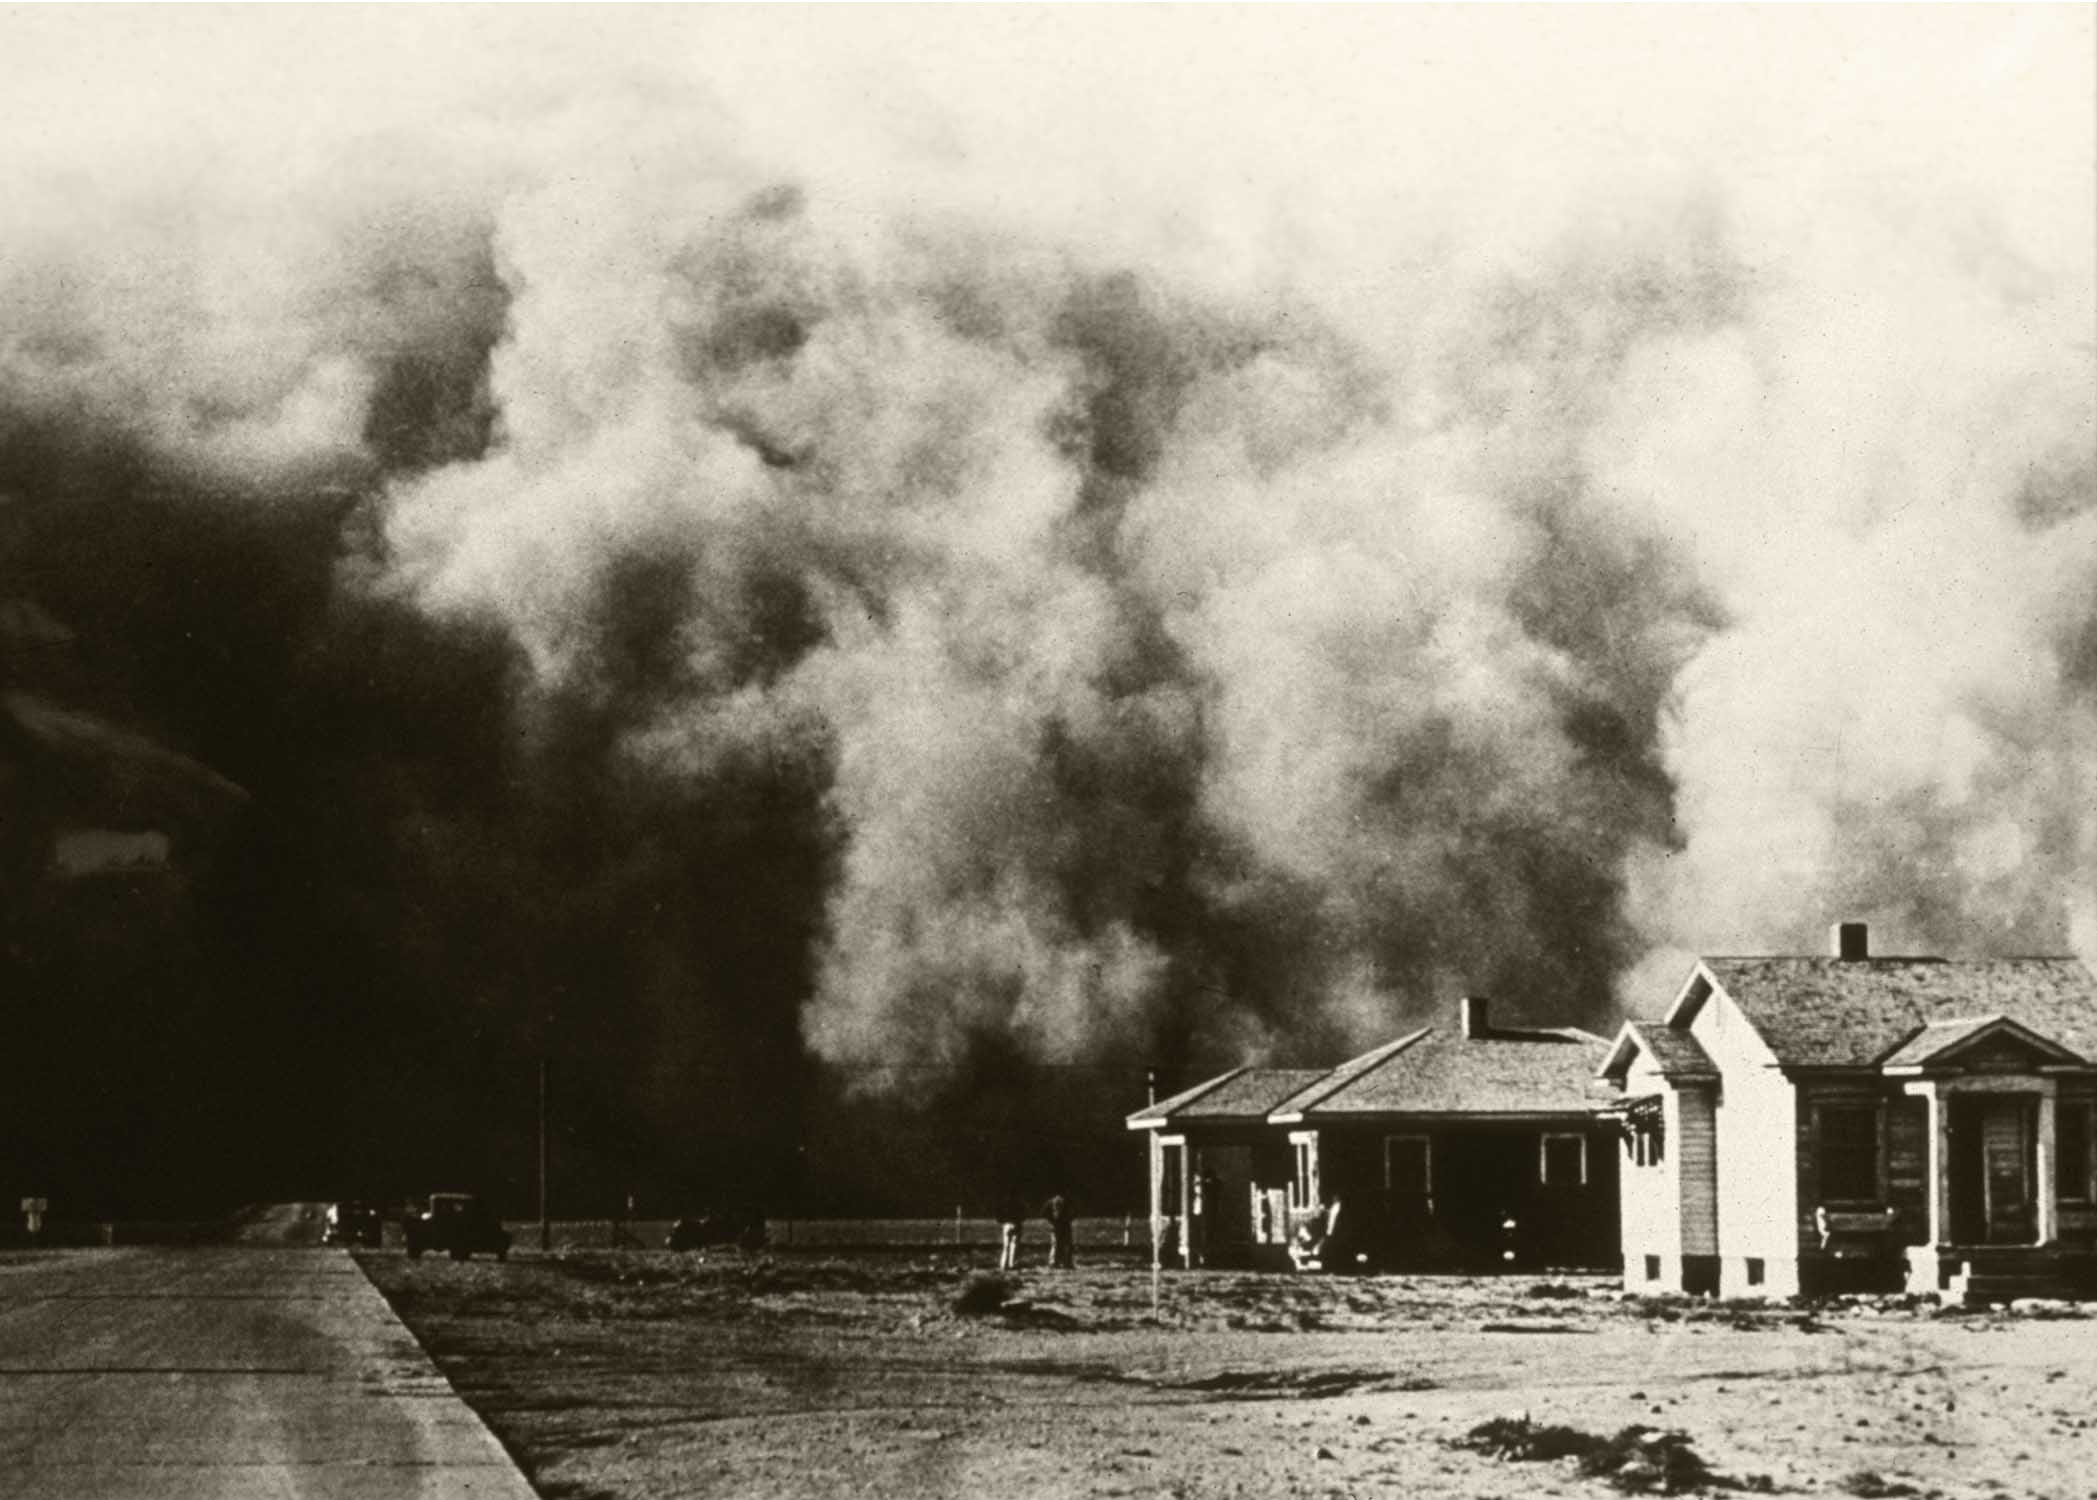 A dust storm about to cover a home in the middle of the United States 1930s